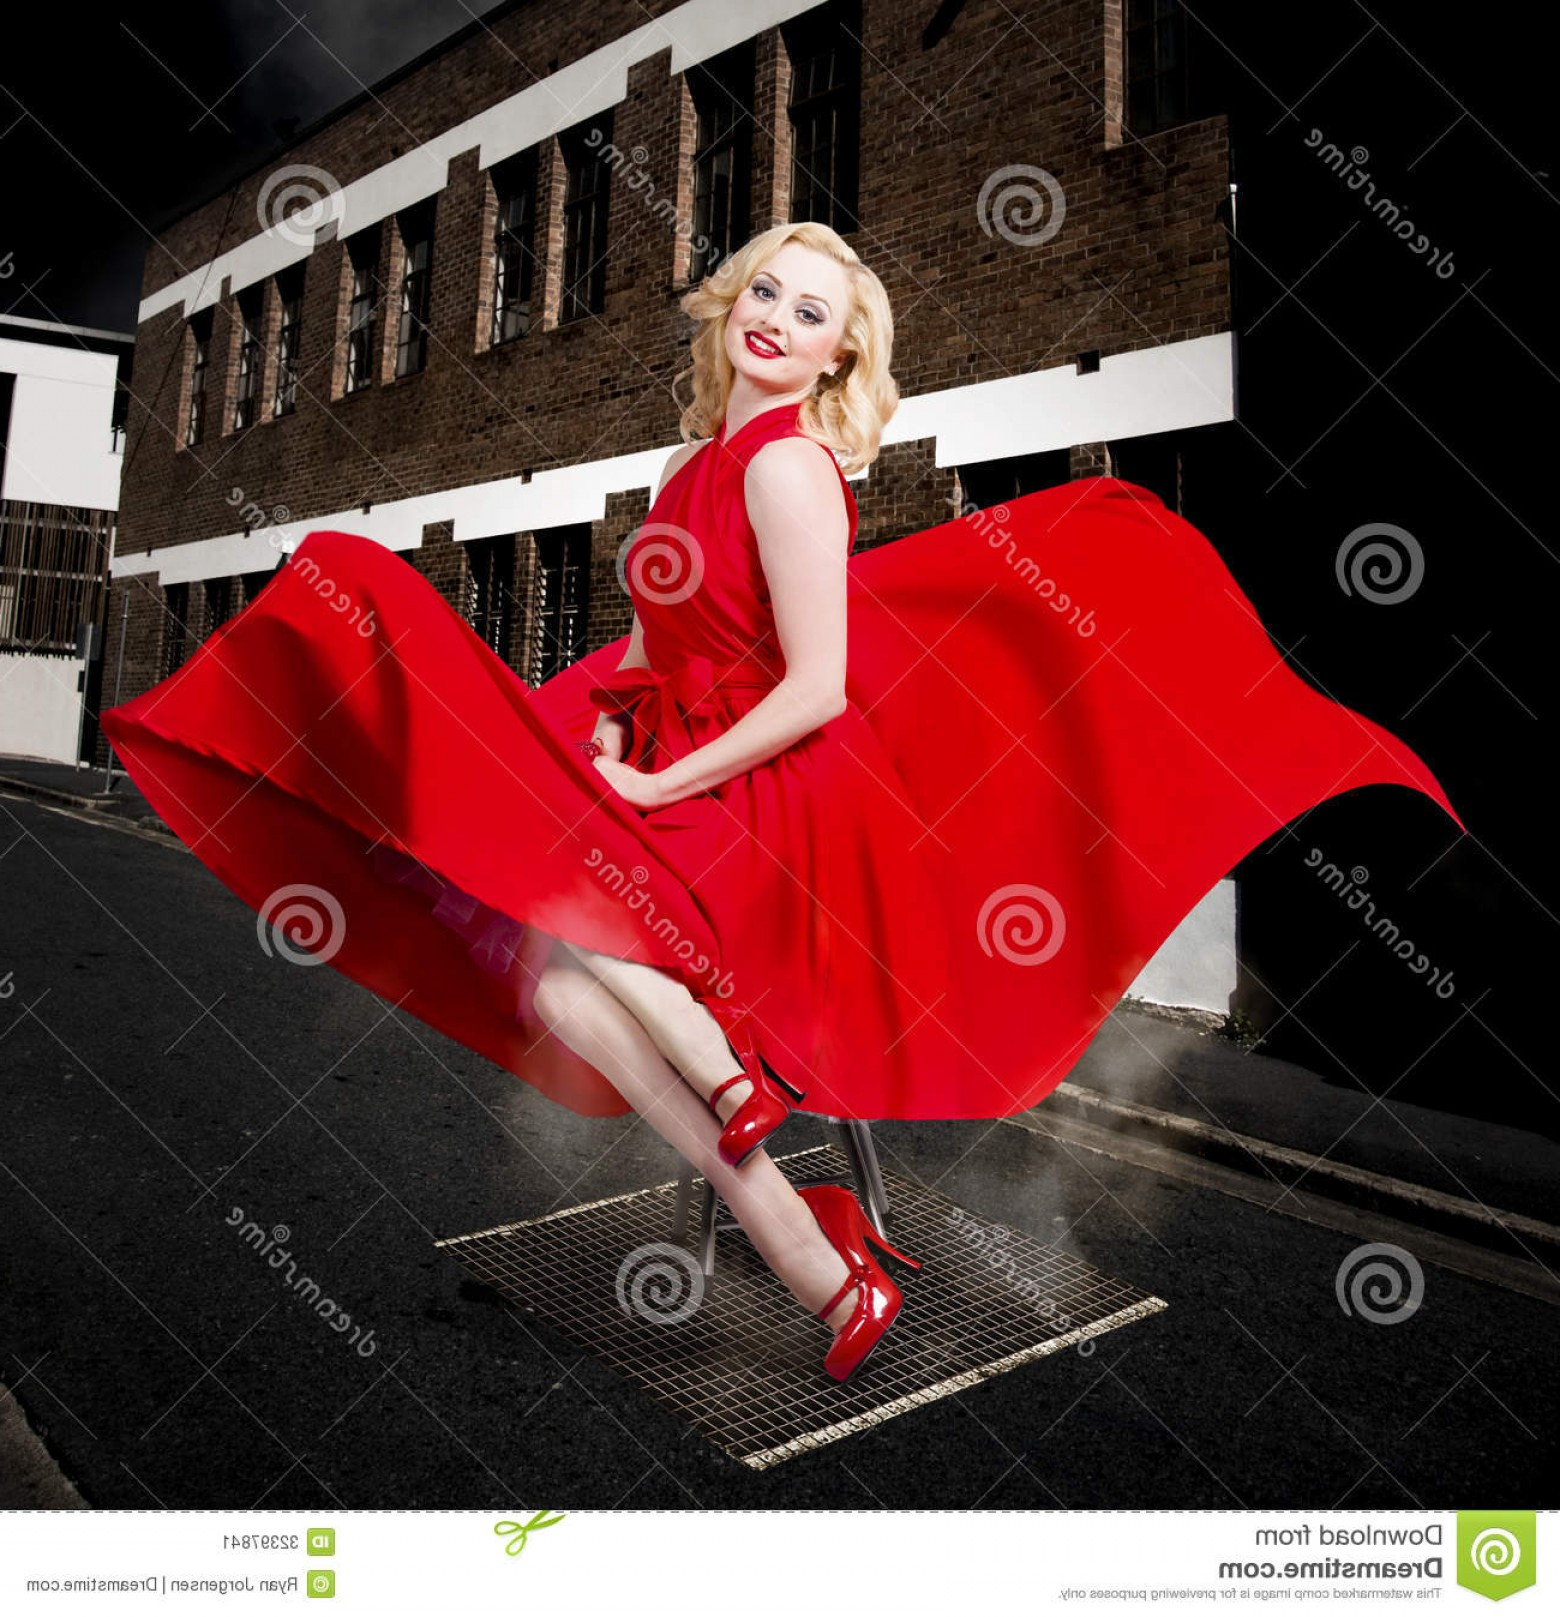 Marilyn Monroe Dress Vector: Stock Image Blond Marilyn Monroe Pinup Girl Retro Dress Doing Sexy Red Dance Underneath Open Street Vent Classical Fashion Styles Image